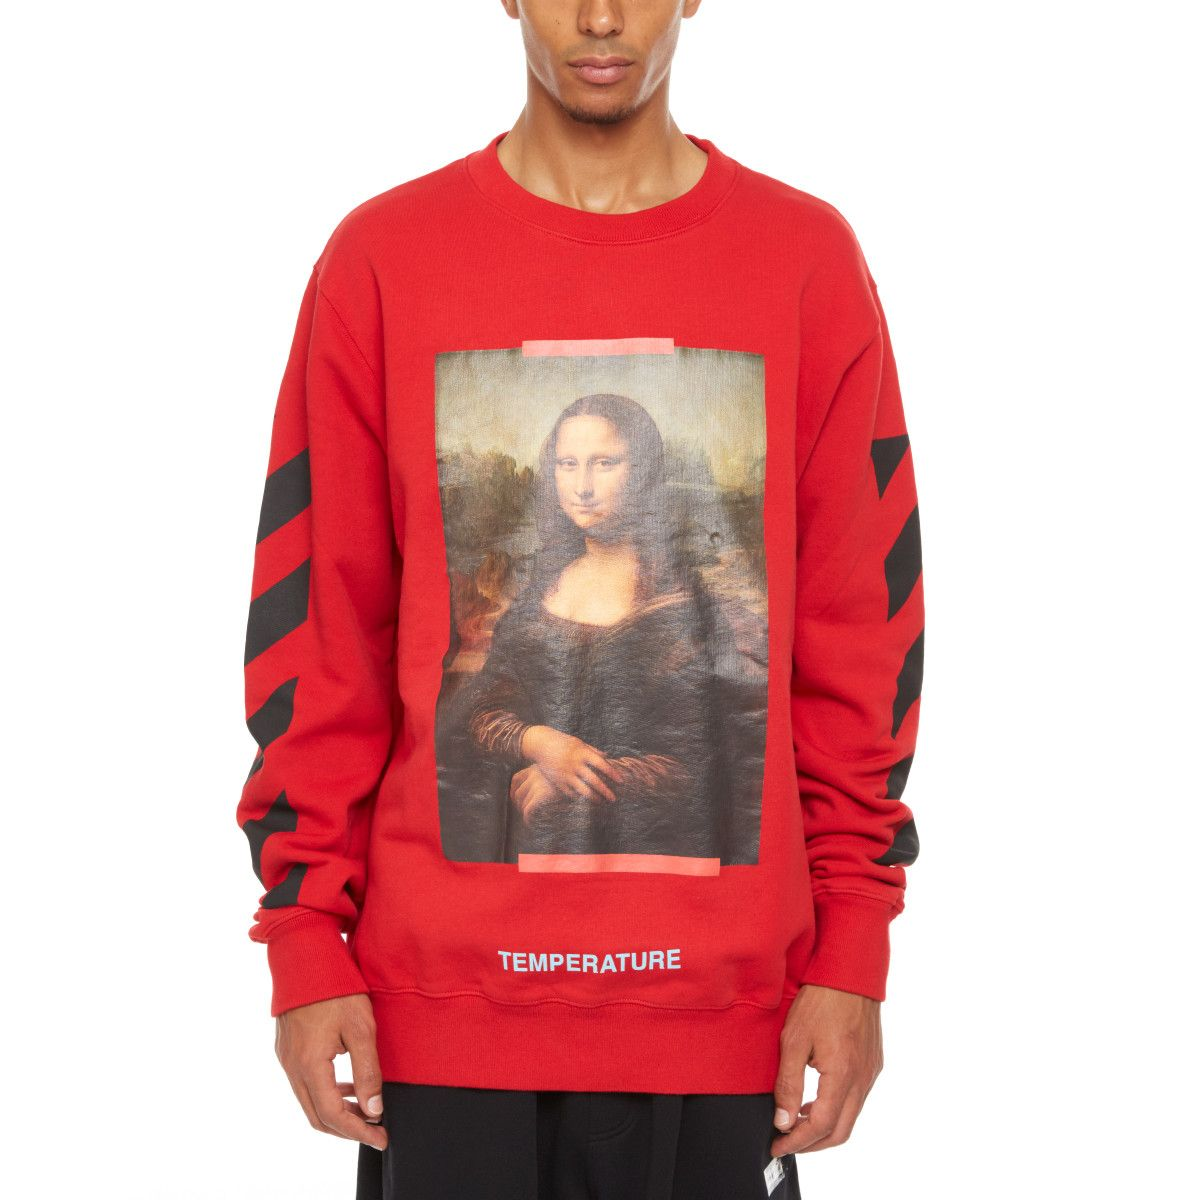 Monalisa Sweatshirt From The S S2018 Off White C O Virgil Abloh Collection In Red Personalized Clothes Off White Shop Sweatshirts [ 1200 x 1200 Pixel ]